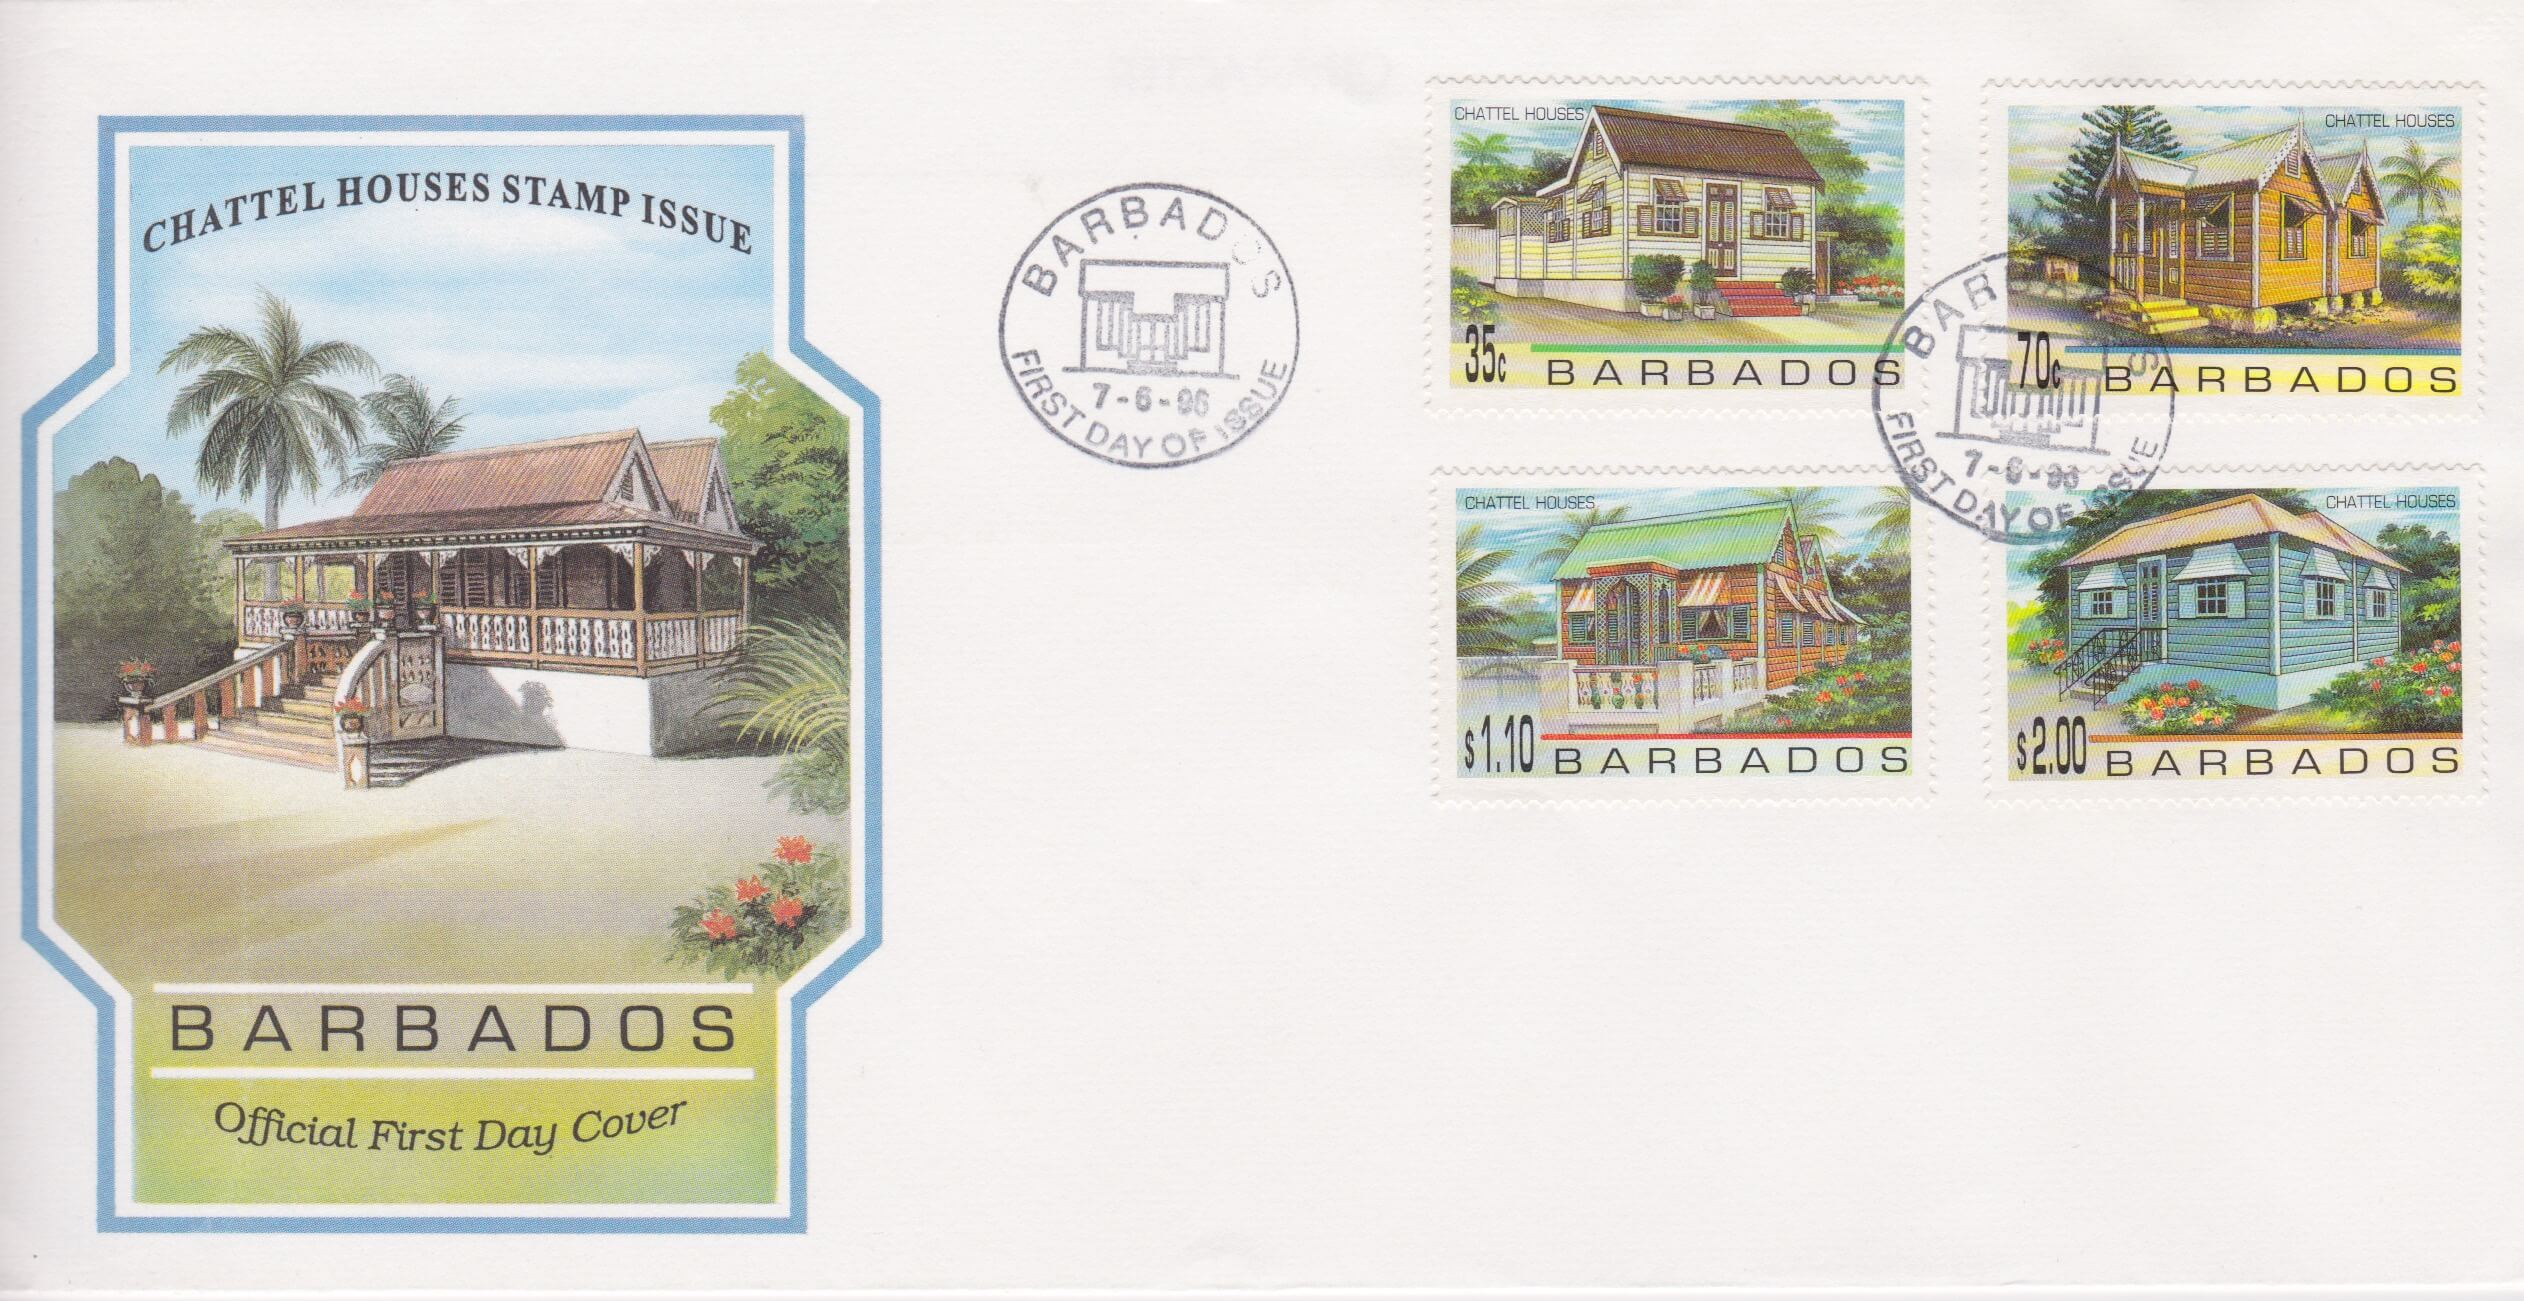 Barbados 1996 Chattel Houses FDC